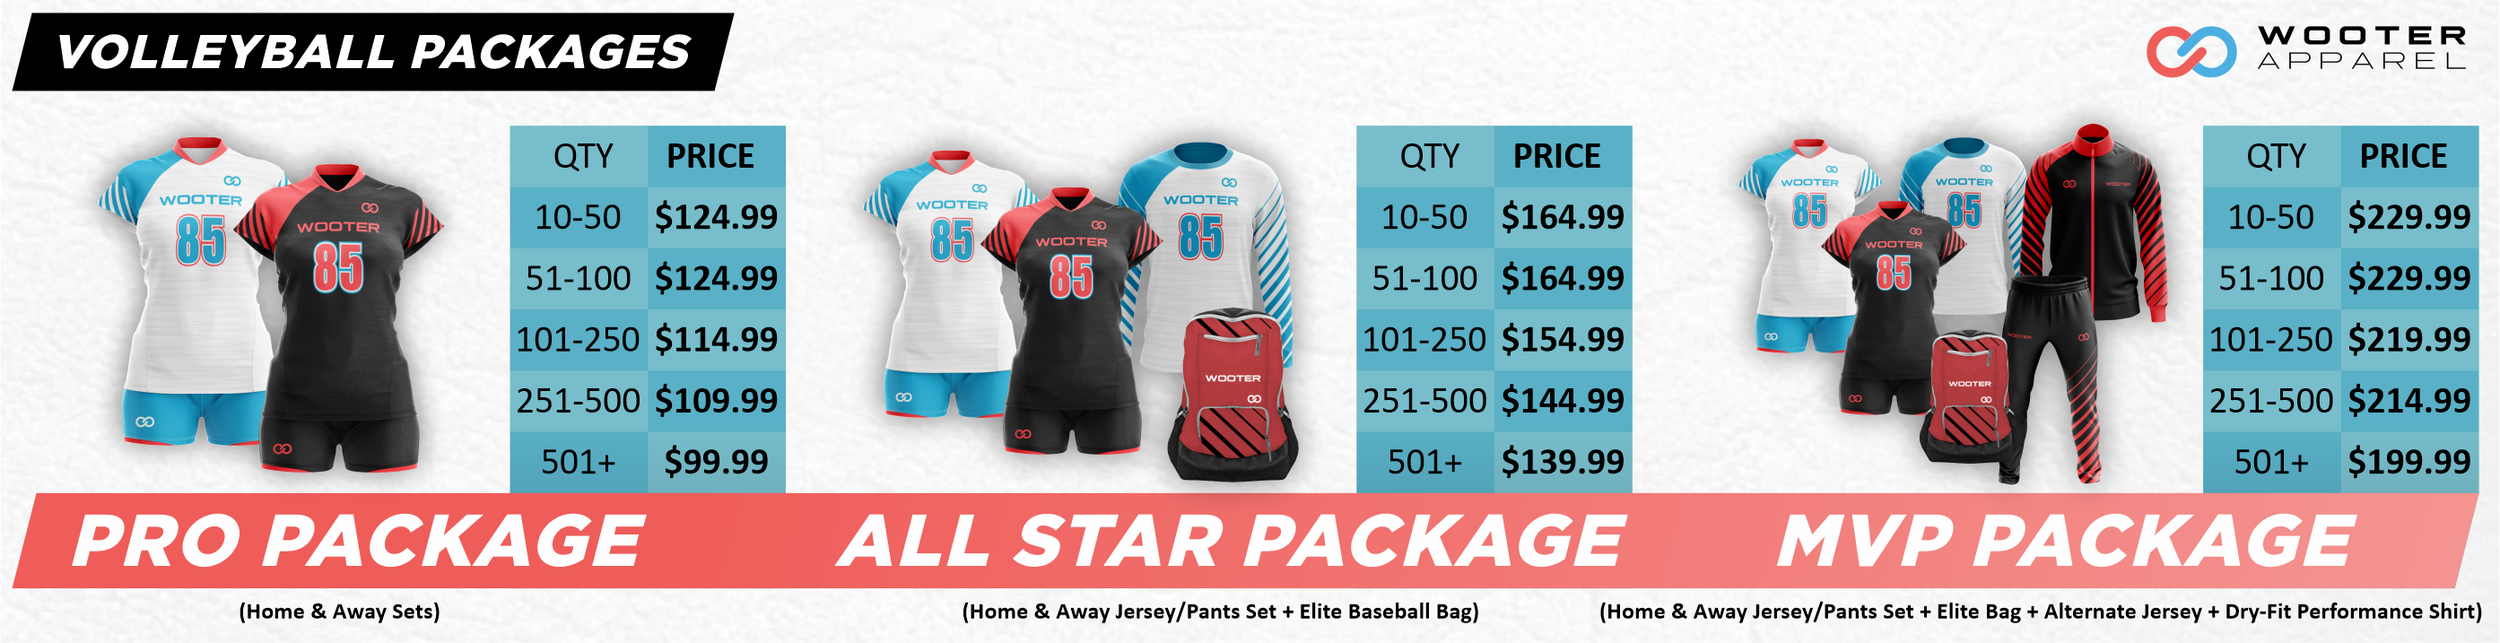 Wooter Apparel Volleyball Packages, Jerseys, Uniforms